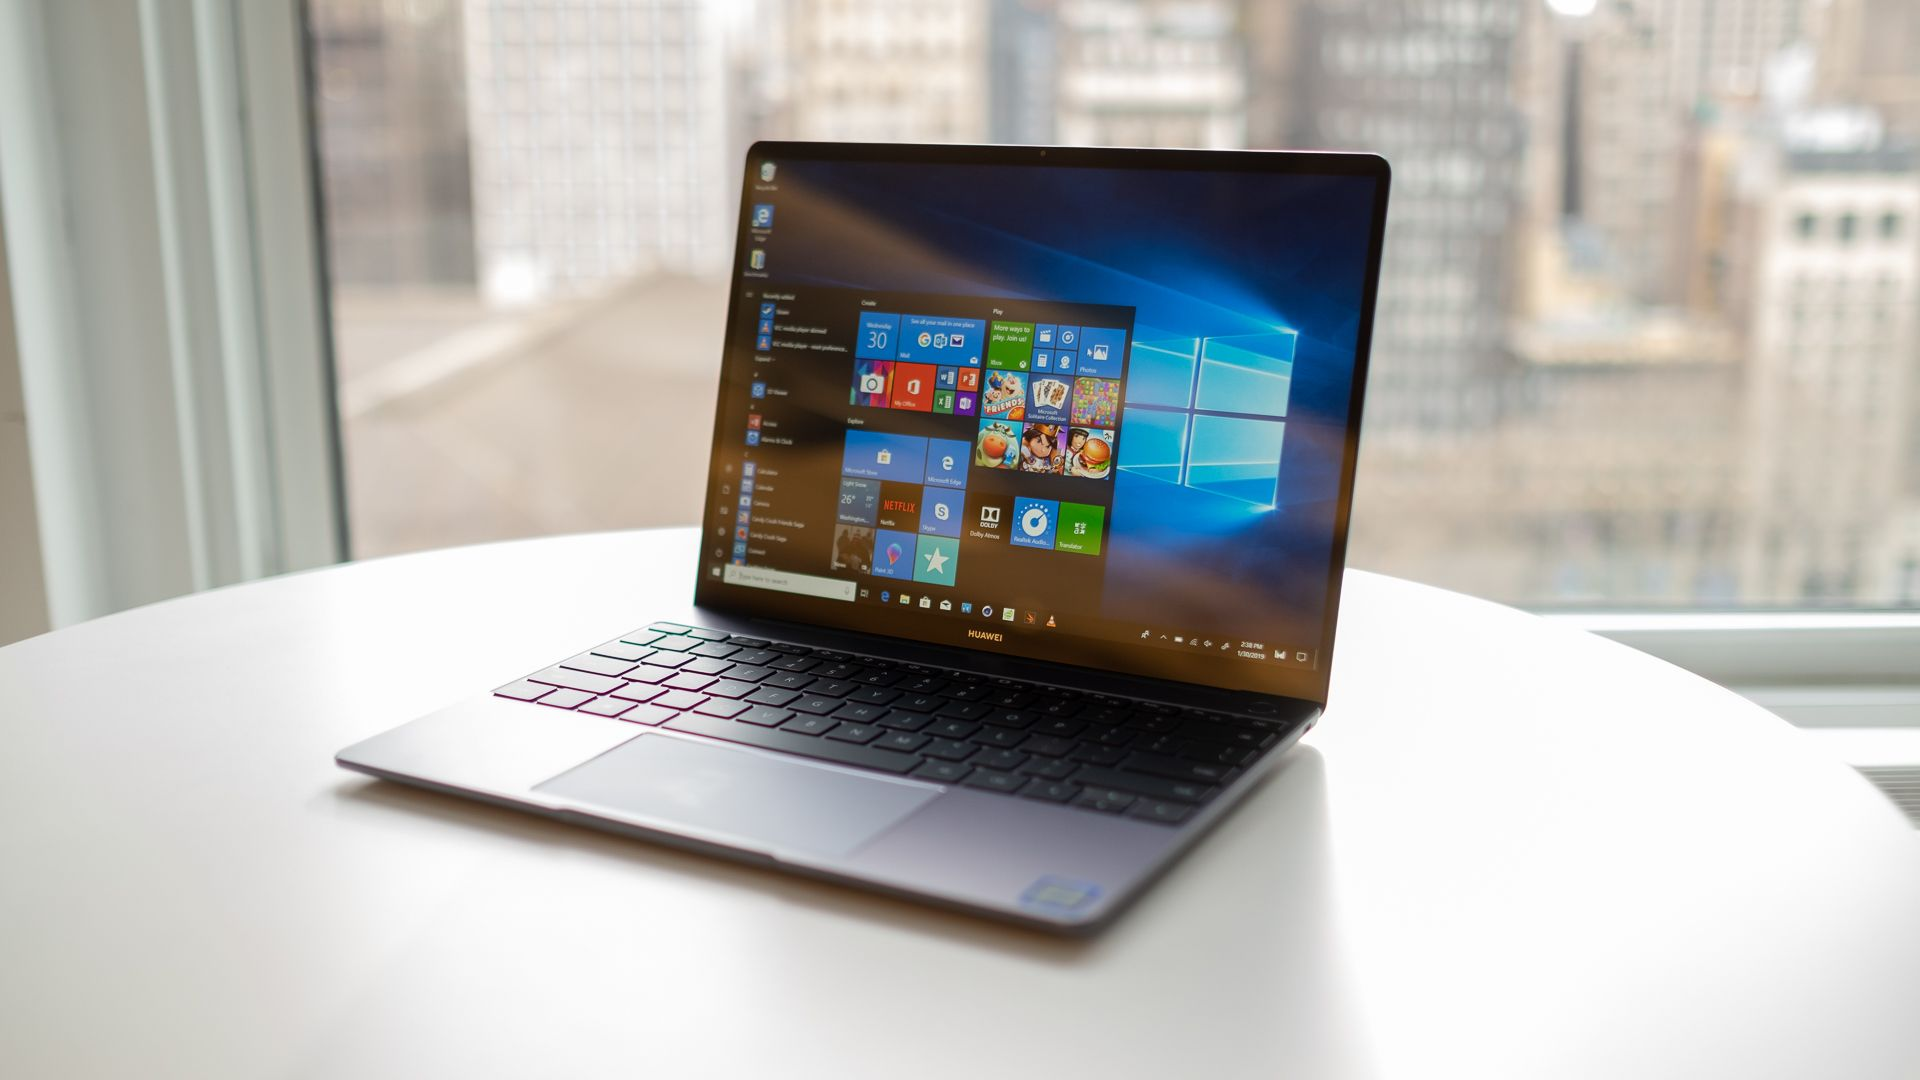 THE BEST LAPTOP YOU CAN BUY IN 2021